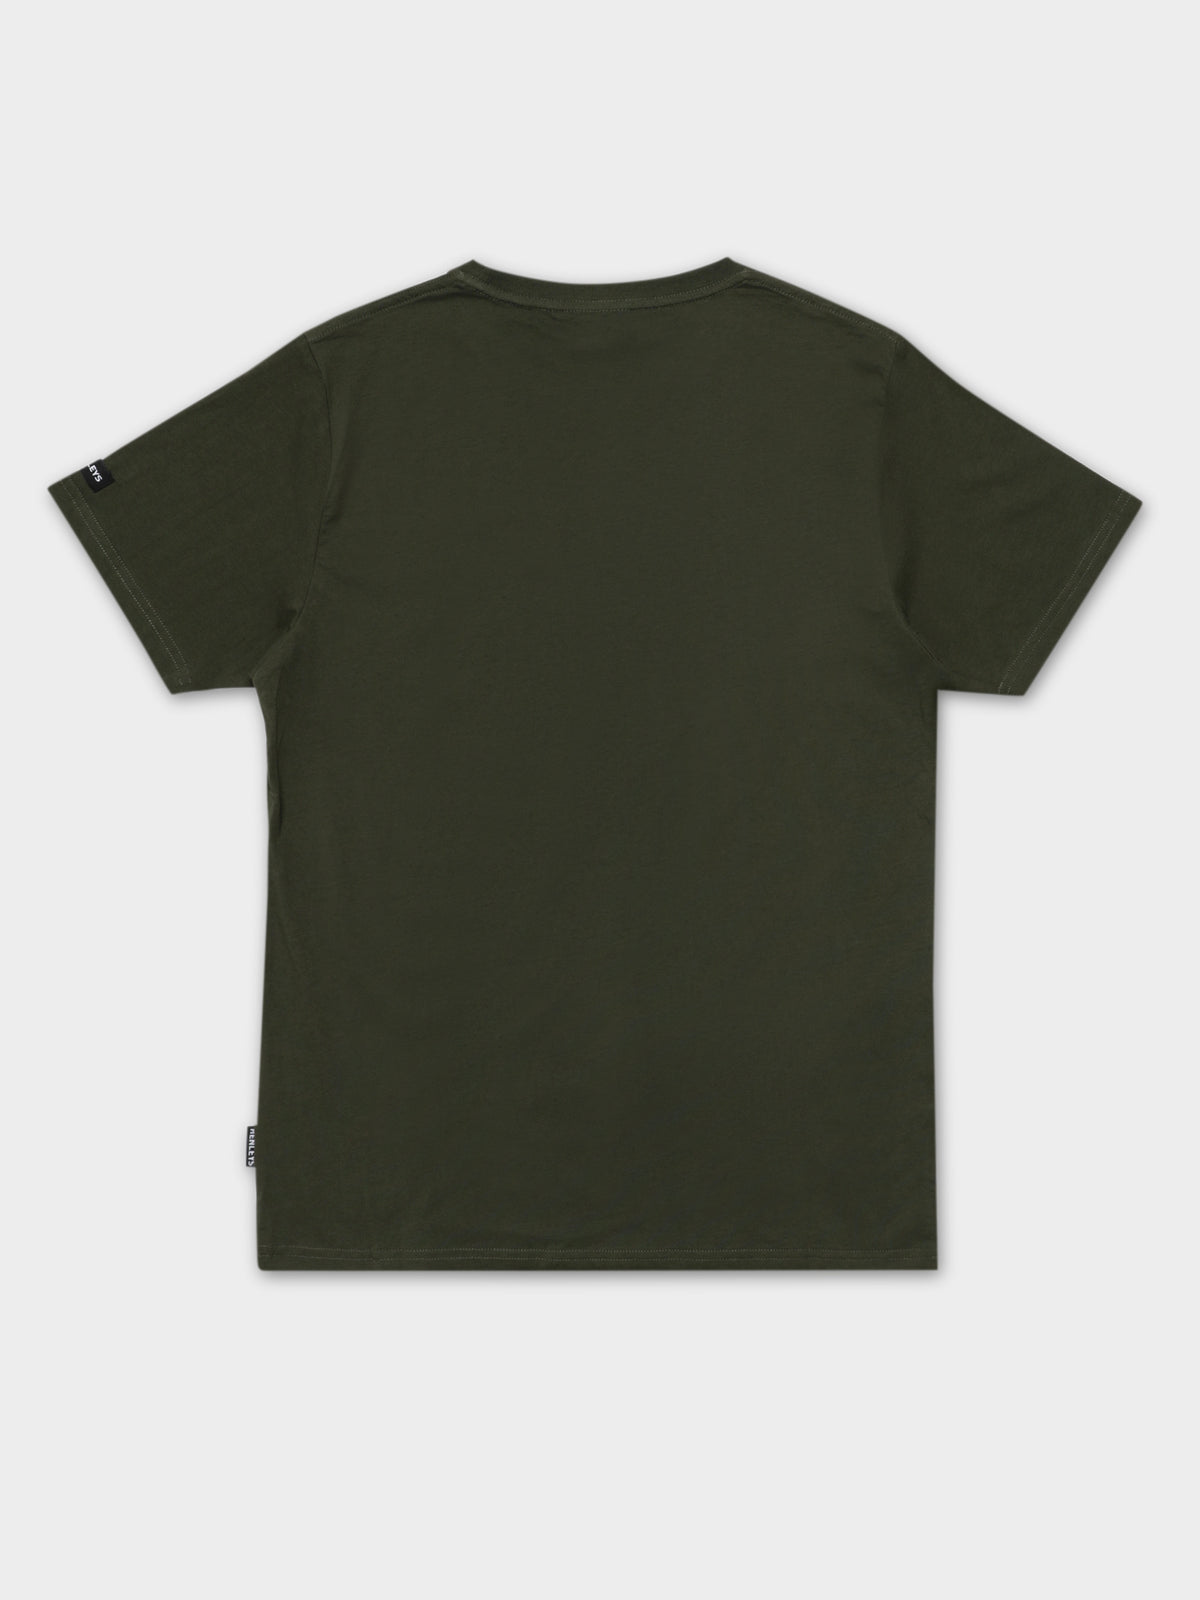 Lopez T-Shirt in Camo Green